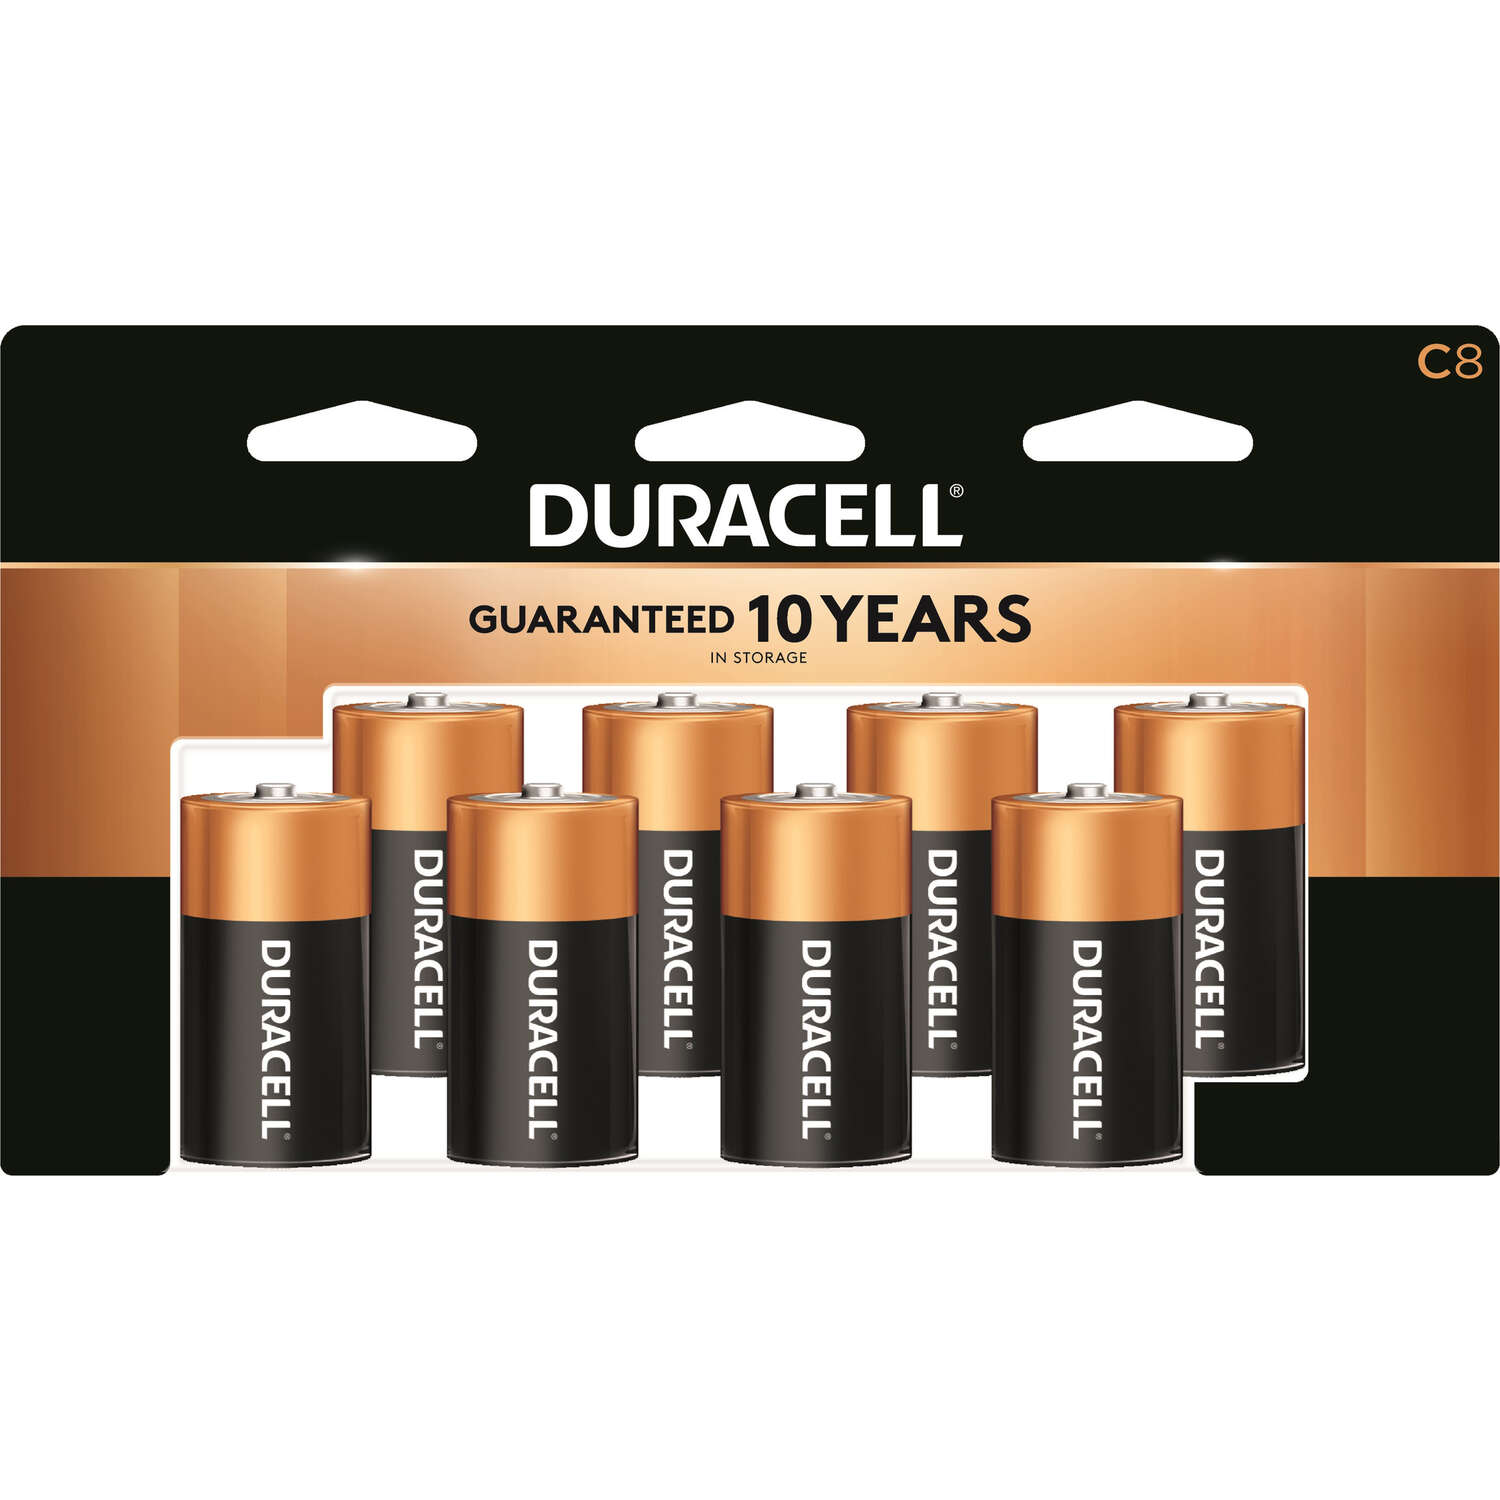 Duracell  Coppertop  C  Alkaline  Batteries  8 pk Carded